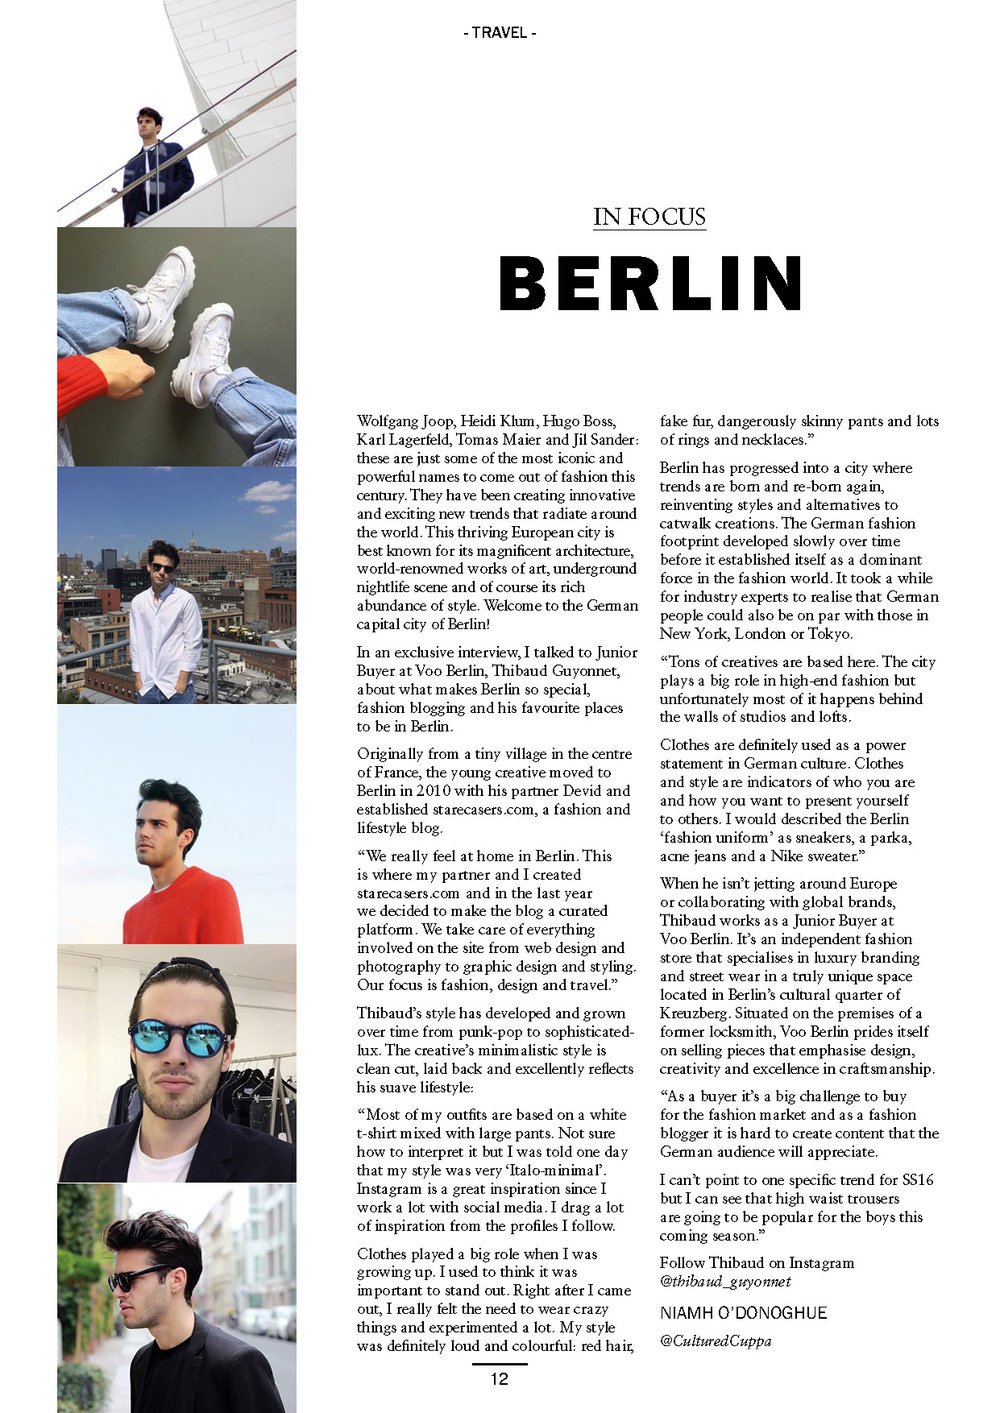 Berlin focus, MFI Magazine, 2015